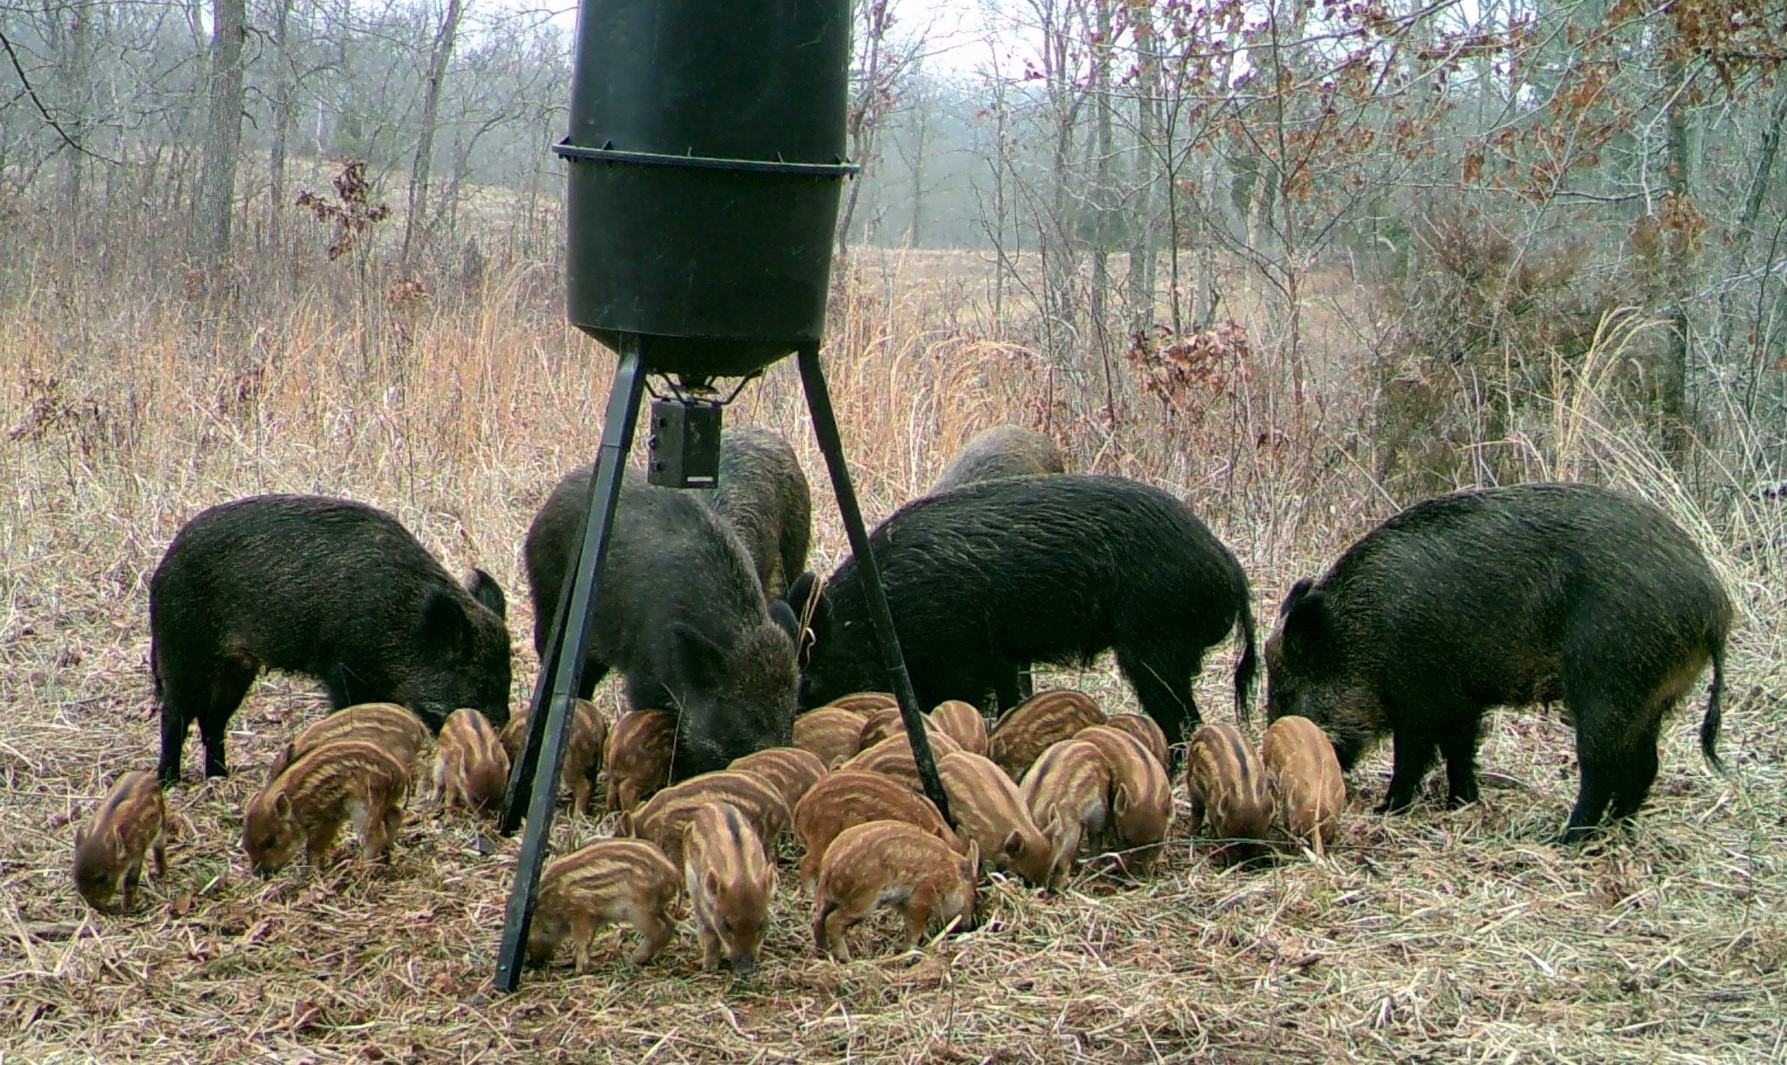 Westlake Legal Group hogs-on-bait Texas woman killed by feral hogs outside home in 'unbelievably tragic' incident fox-news/us/us-regions/southwest/texas fox-news/great-outdoors fox news fnc/us fnc article 2654f5bb-1e21-5f58-8bd9-50c383a00c4b